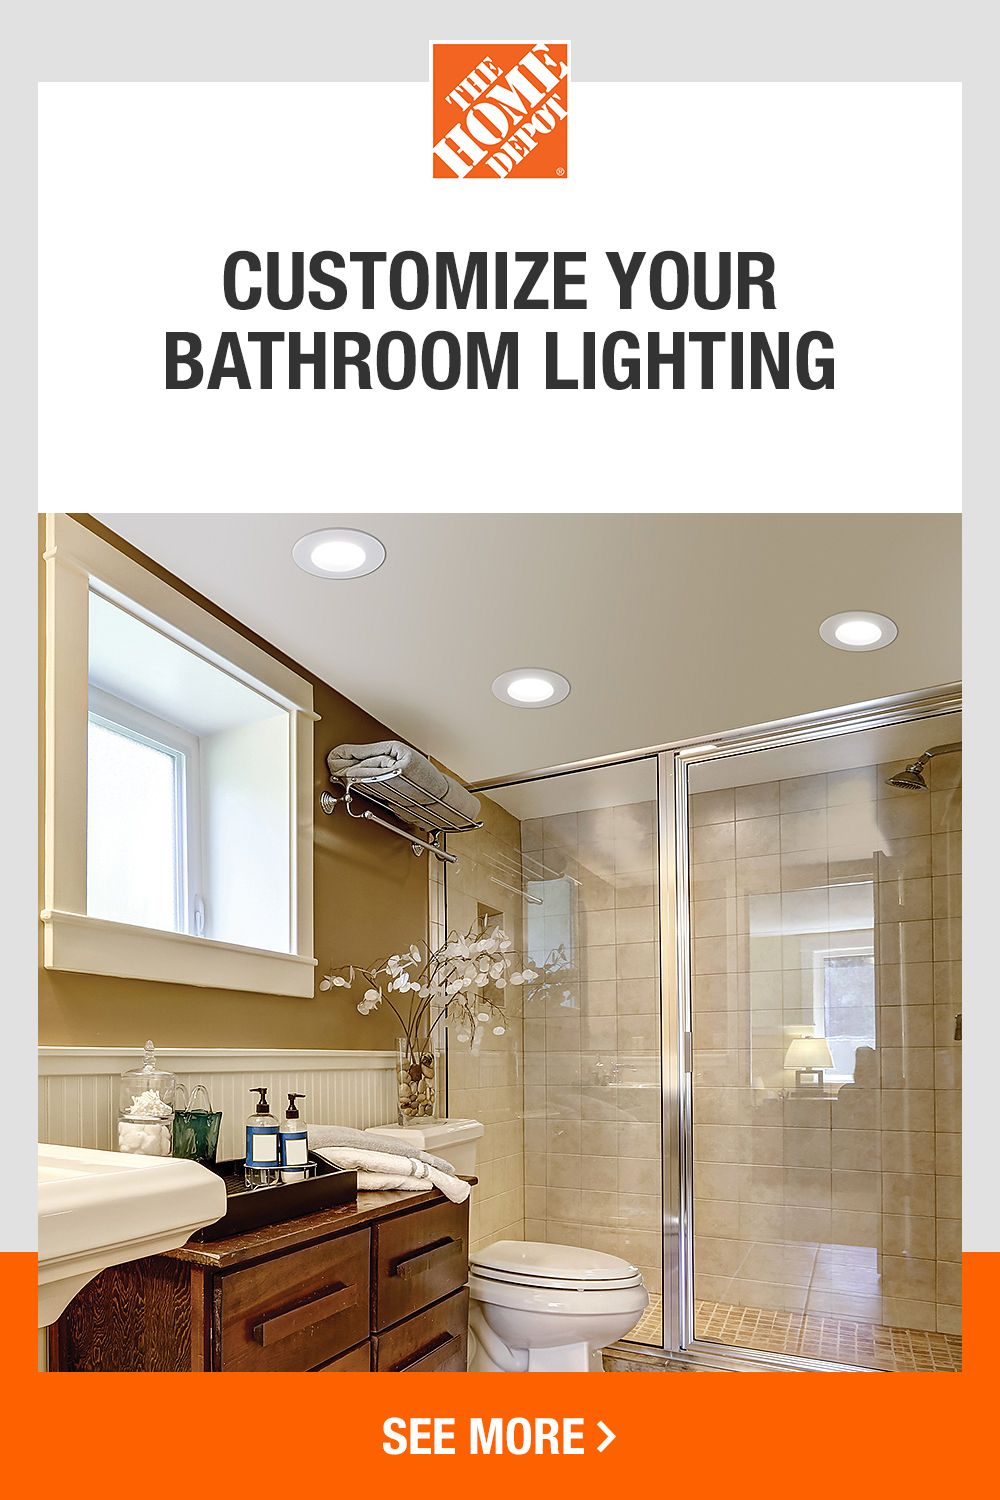 Customize Your Home With Recessed Lighting Options From The Home Depot Explore Recessed Light In 2020 Bathroom Lighting Trends Recessed Lighting Small Master Bathroom